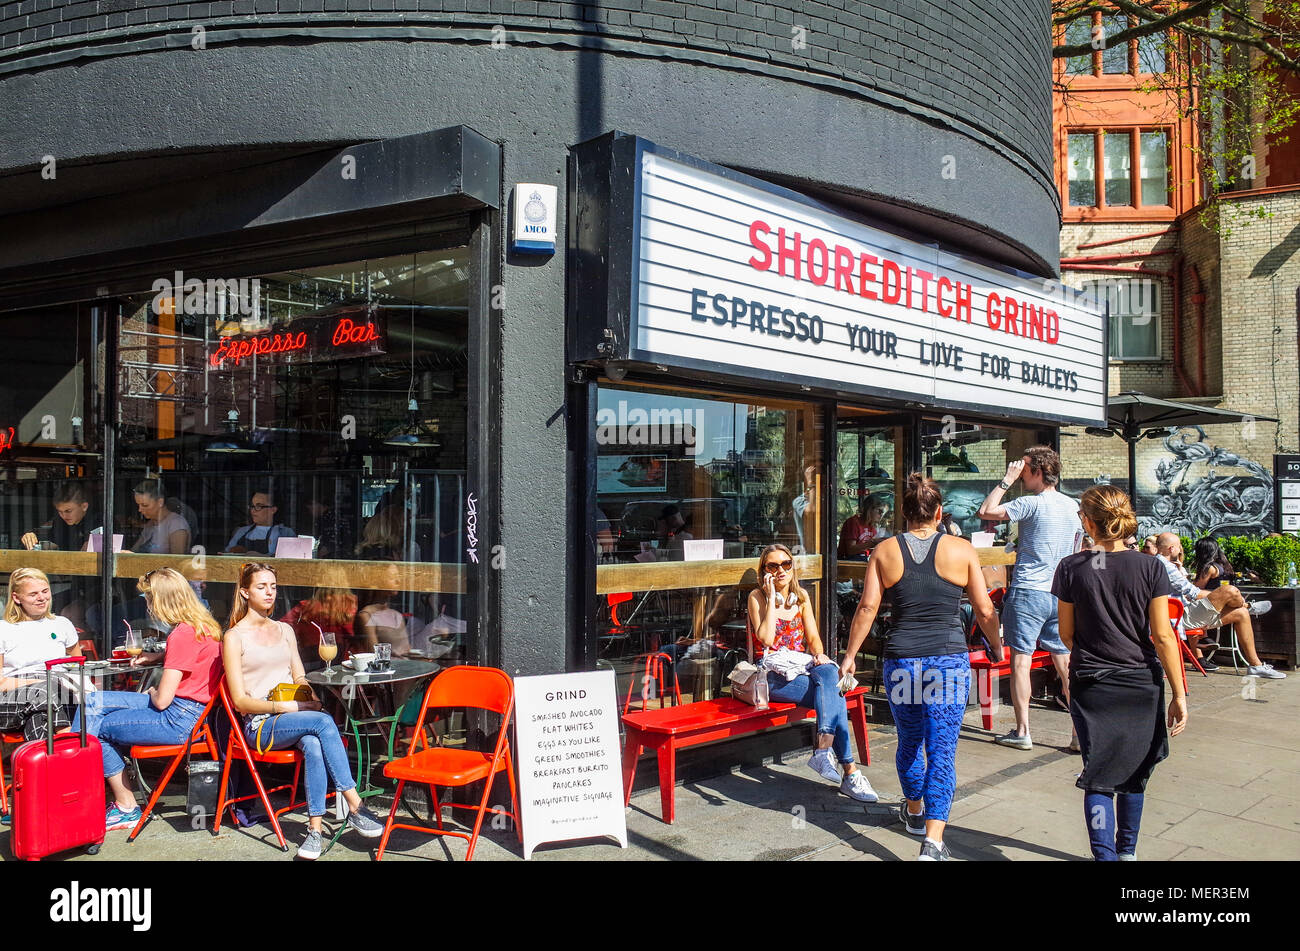 Shoreditch Cafe - the iconic Shoreditch Grind Cafe on London's Silicon Roundabout / Old Street Roundabout - Stock Image